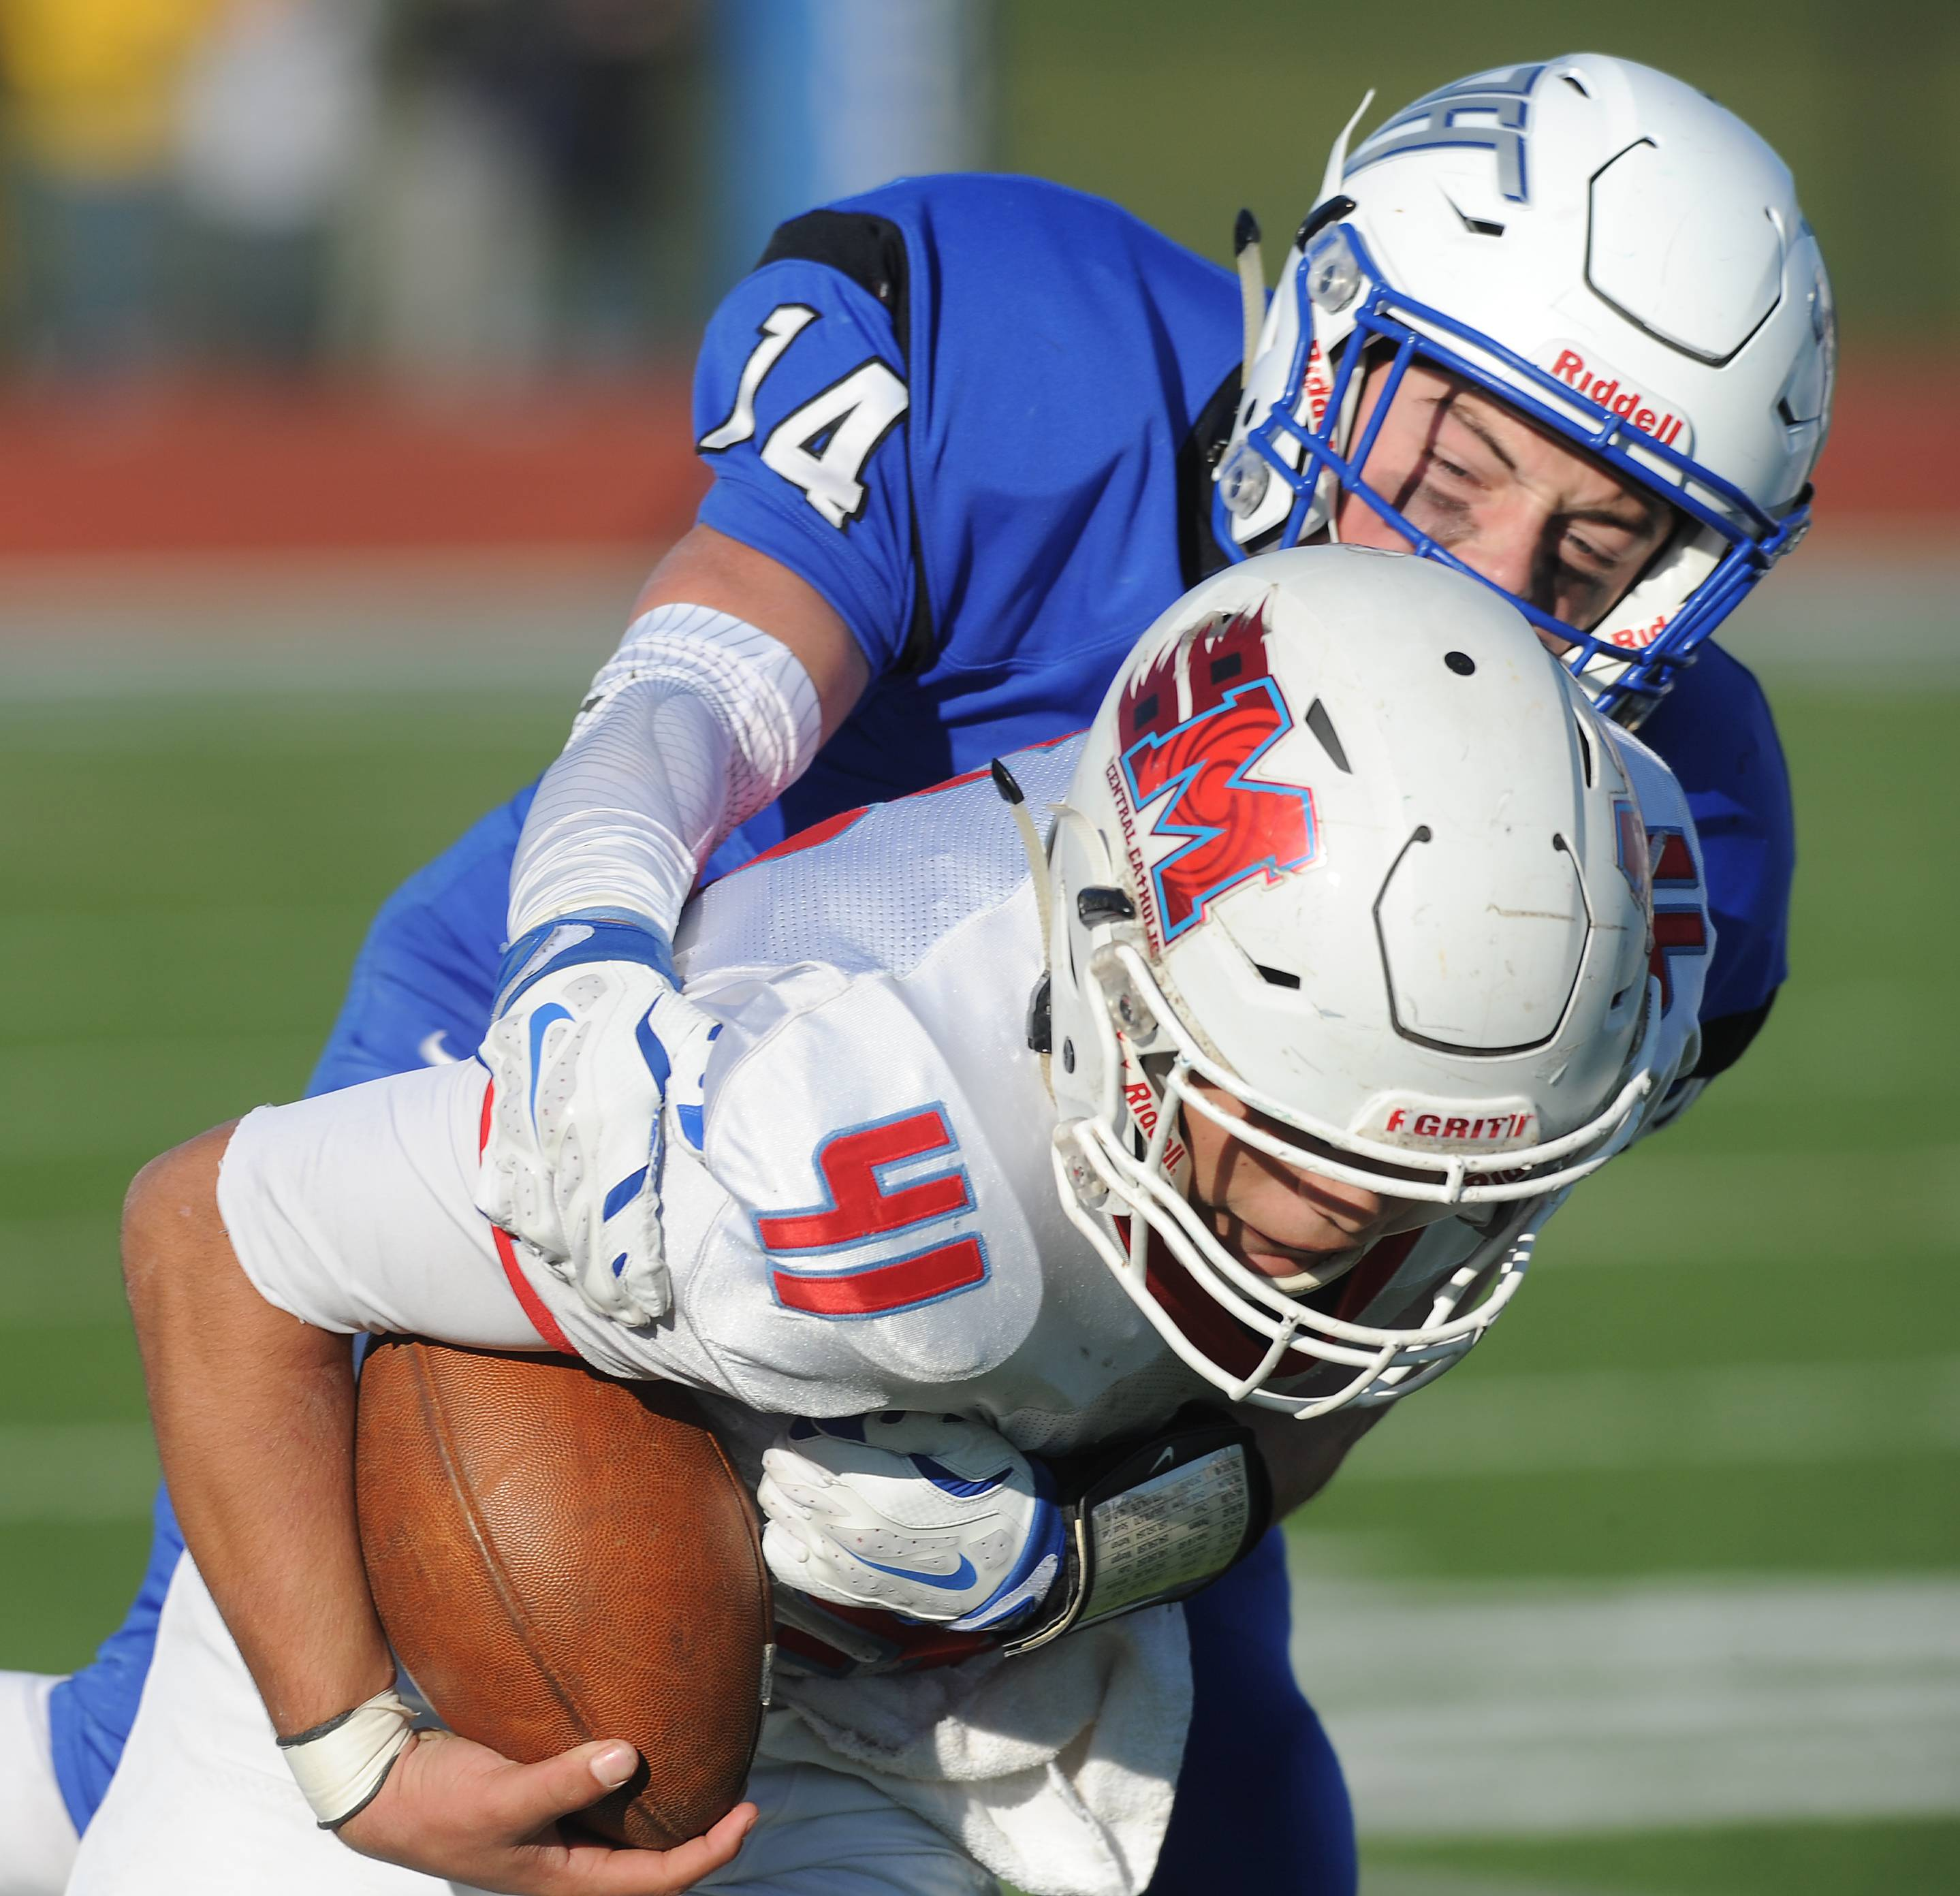 Vernon Hills' Max Lyle wraps up Marian Central Catholic's Patsy Ricciardi in the second half in the Class 5A state quarterfinals at Vernon Hills on Saturday.